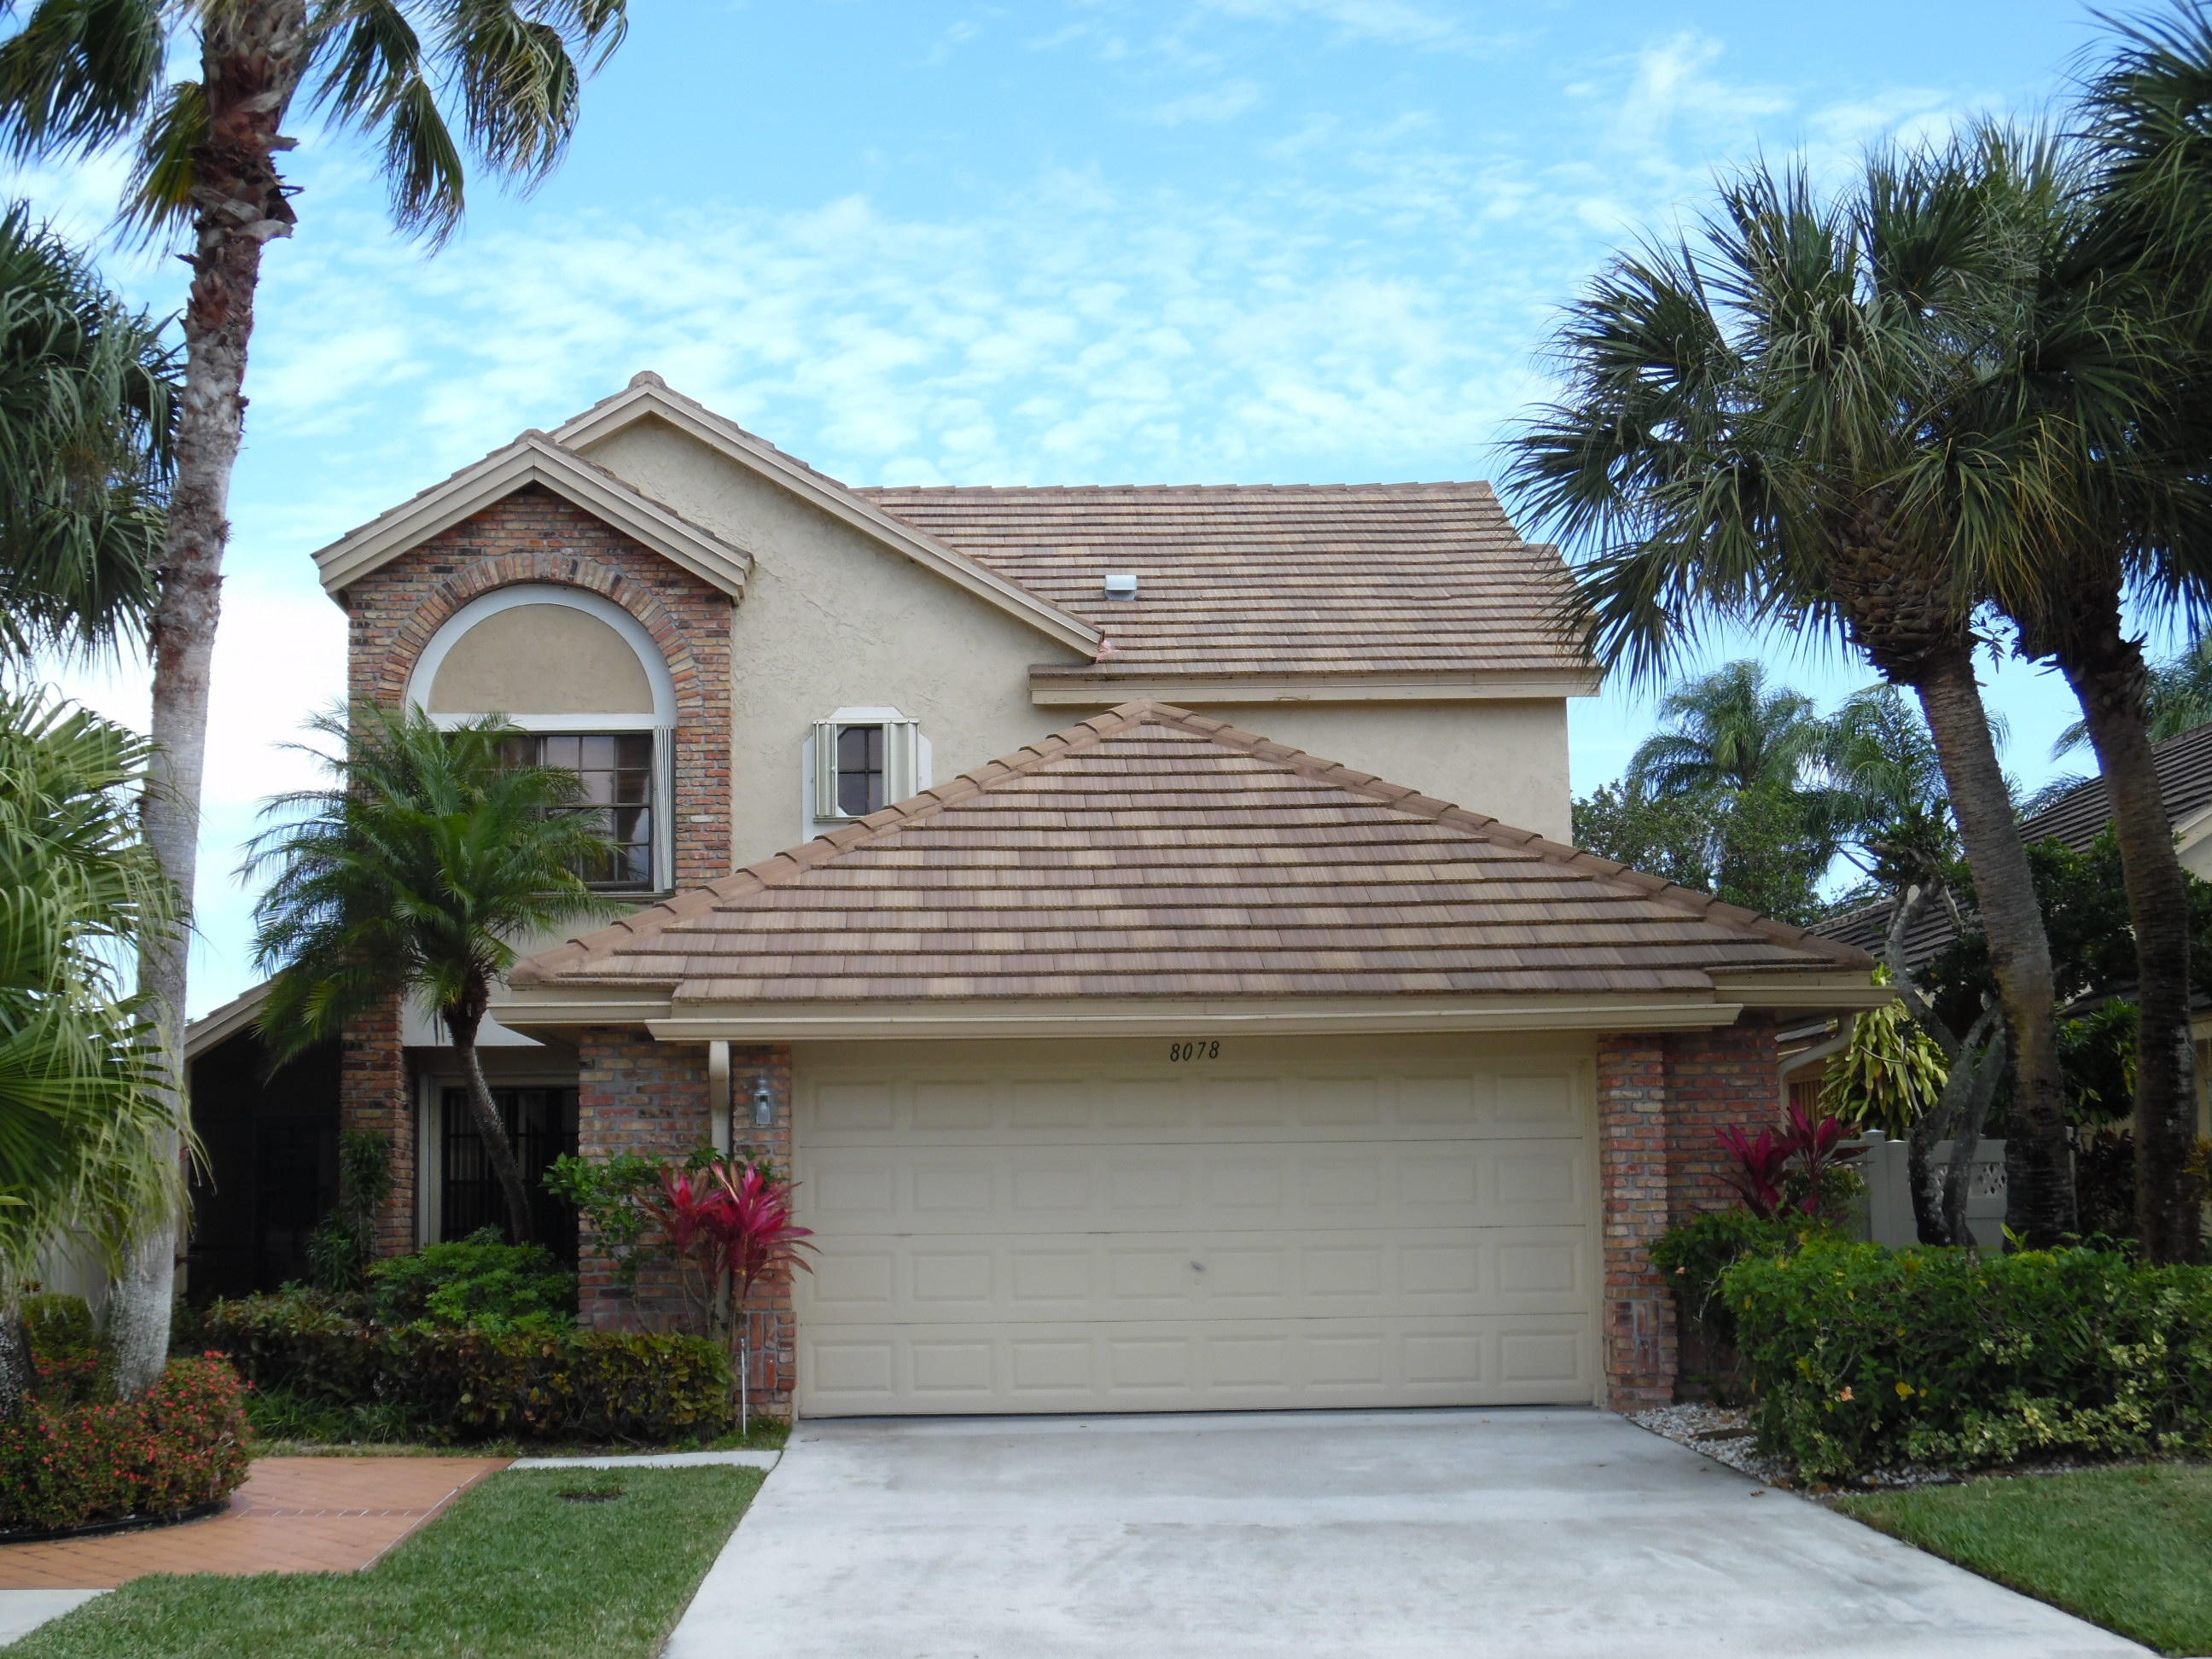 Home for sale in Aberdeen / Cambridge Boynton Beach Florida